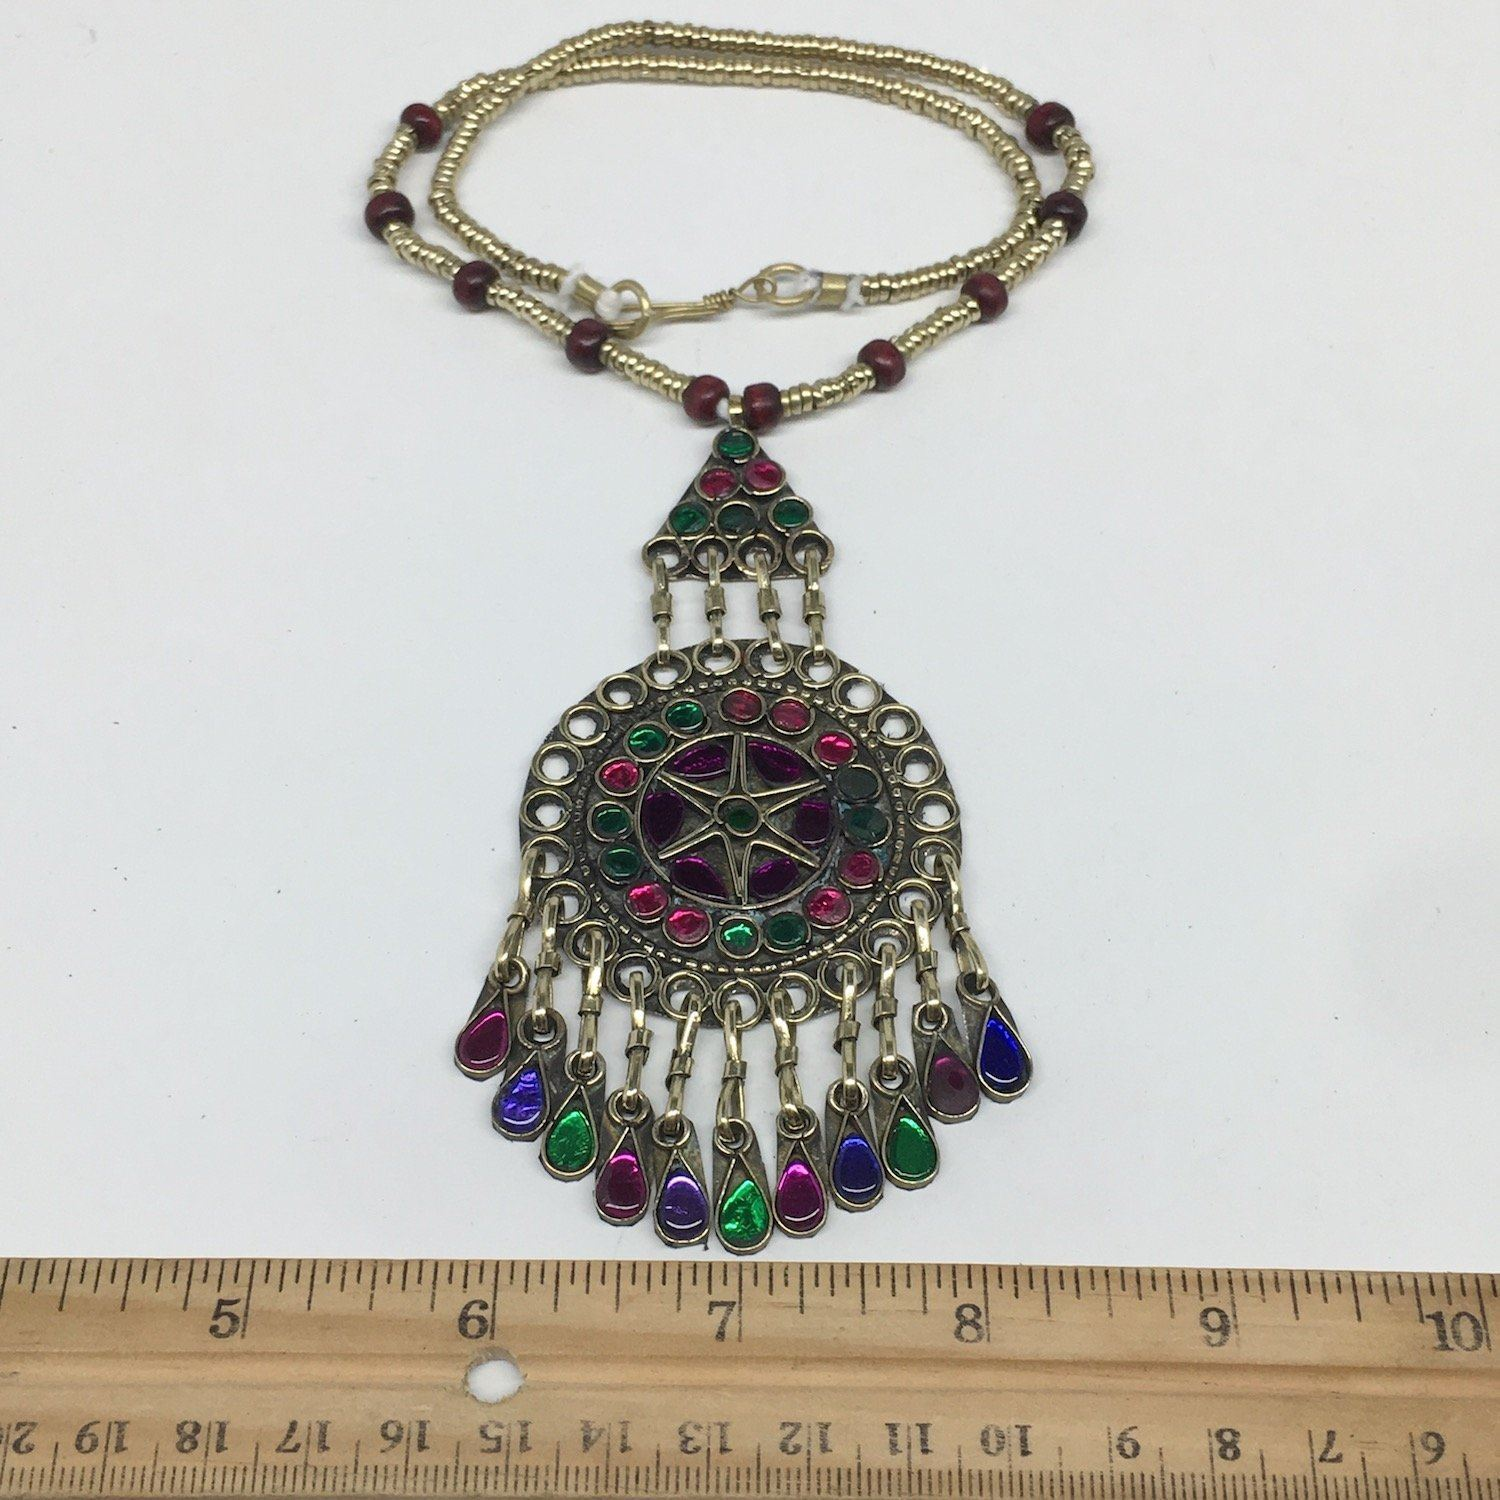 Kuchi Necklace Afghan Tribal Fashion Colorful Glass ATS Necktie Necklace, KN415